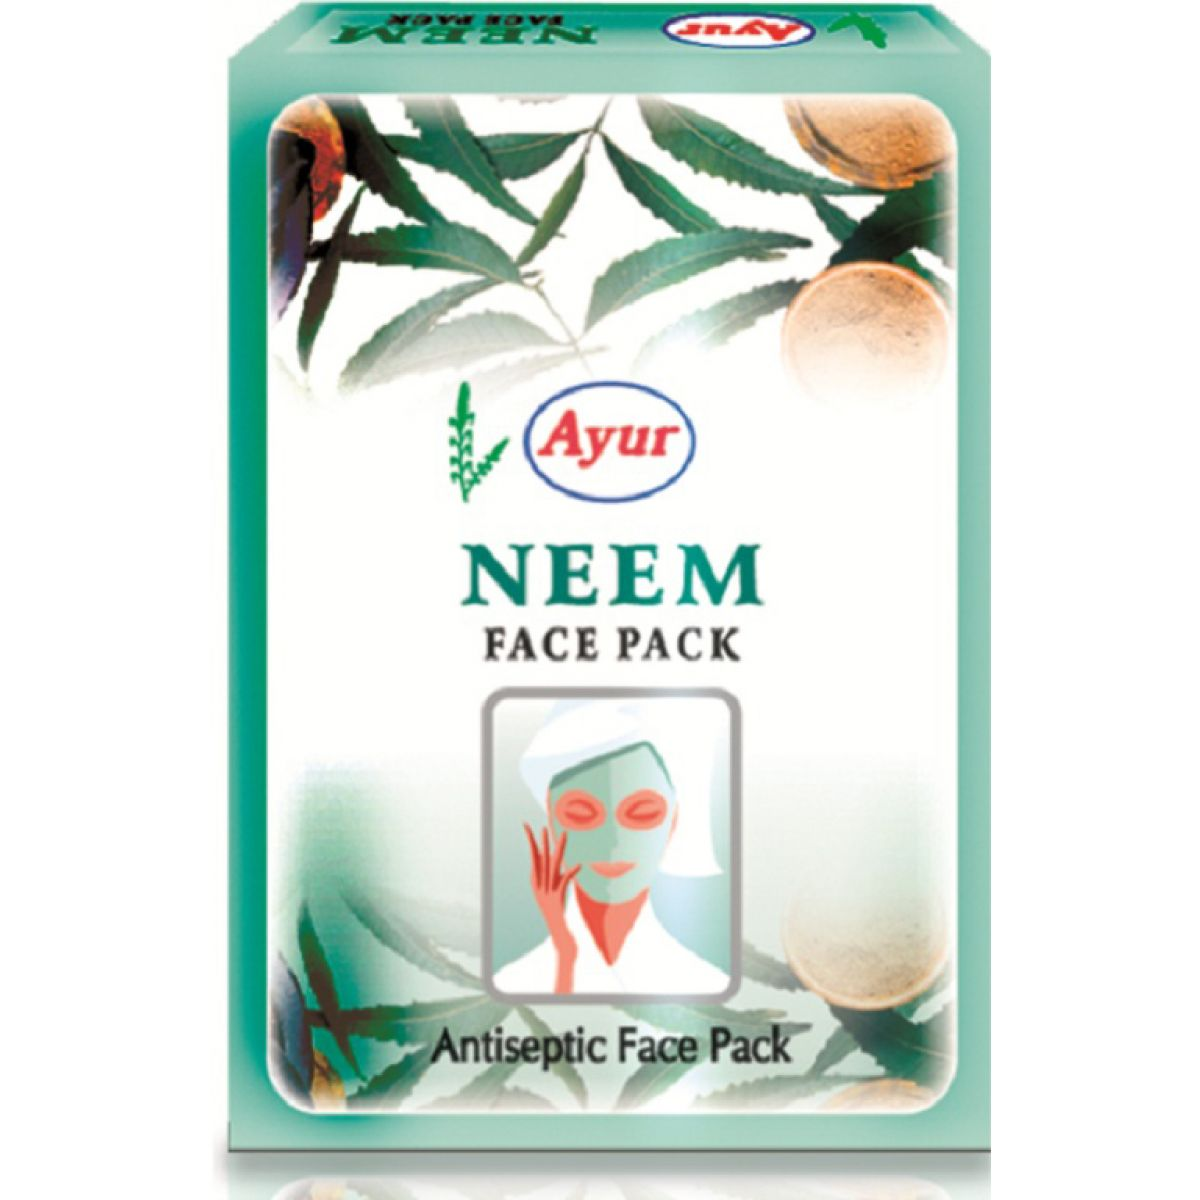 ayur herbal face pack neem antiseptic face pack. Black Bedroom Furniture Sets. Home Design Ideas